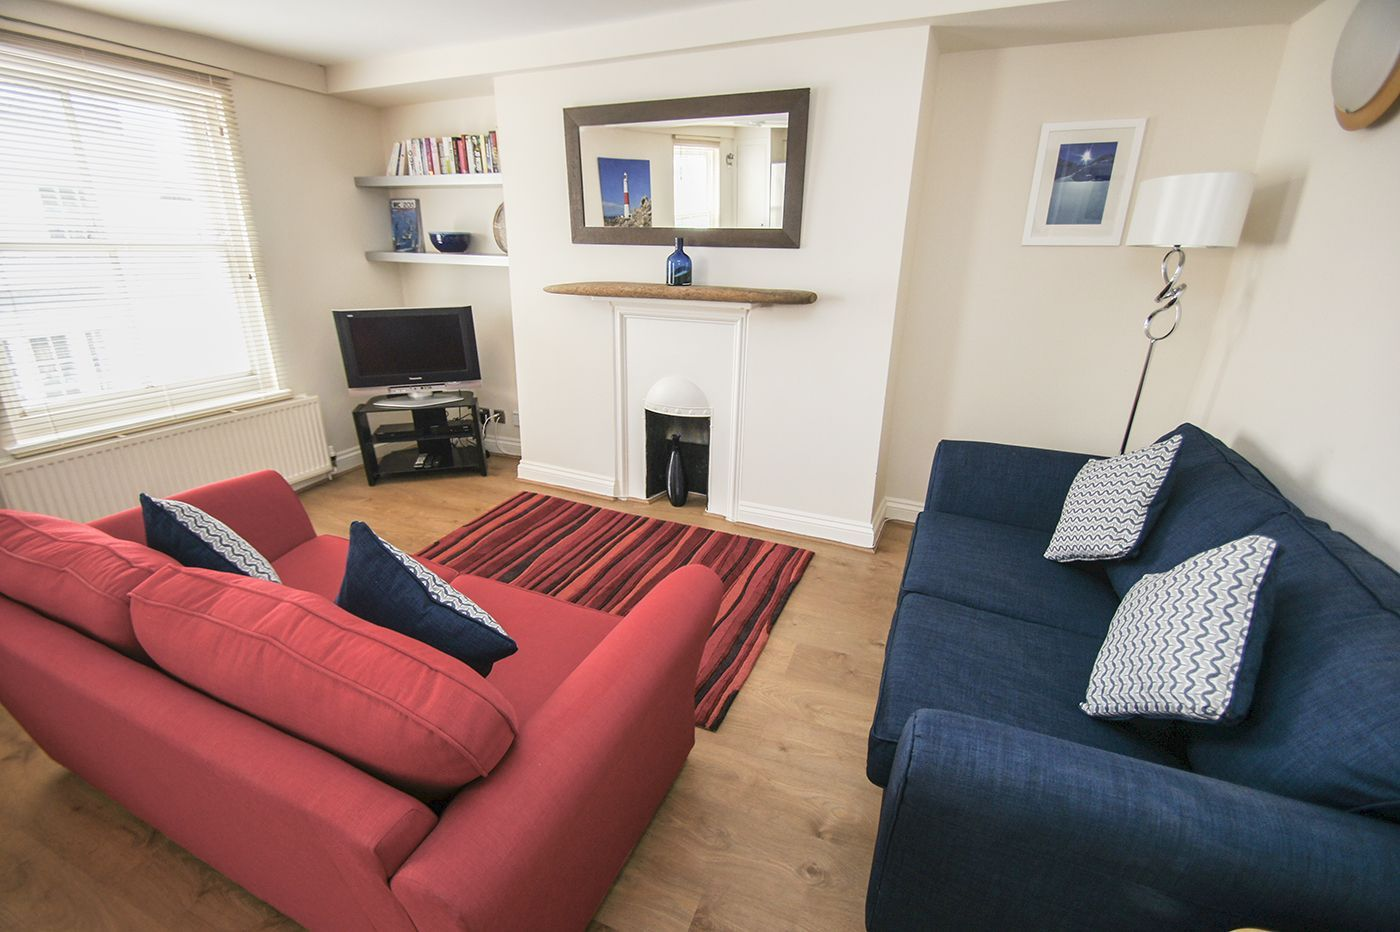 CAVENDISH APARTMENT: Cosy and bright one bed apartment right in the heart of vibrant St James's Street. With bars, cafes, shops and restaurants right on your door step, you will make the most of what Kemptown has to offer. http://www.brightonholidaylets.com/holiday-homes/brighton/cavendish-apartment/207110/